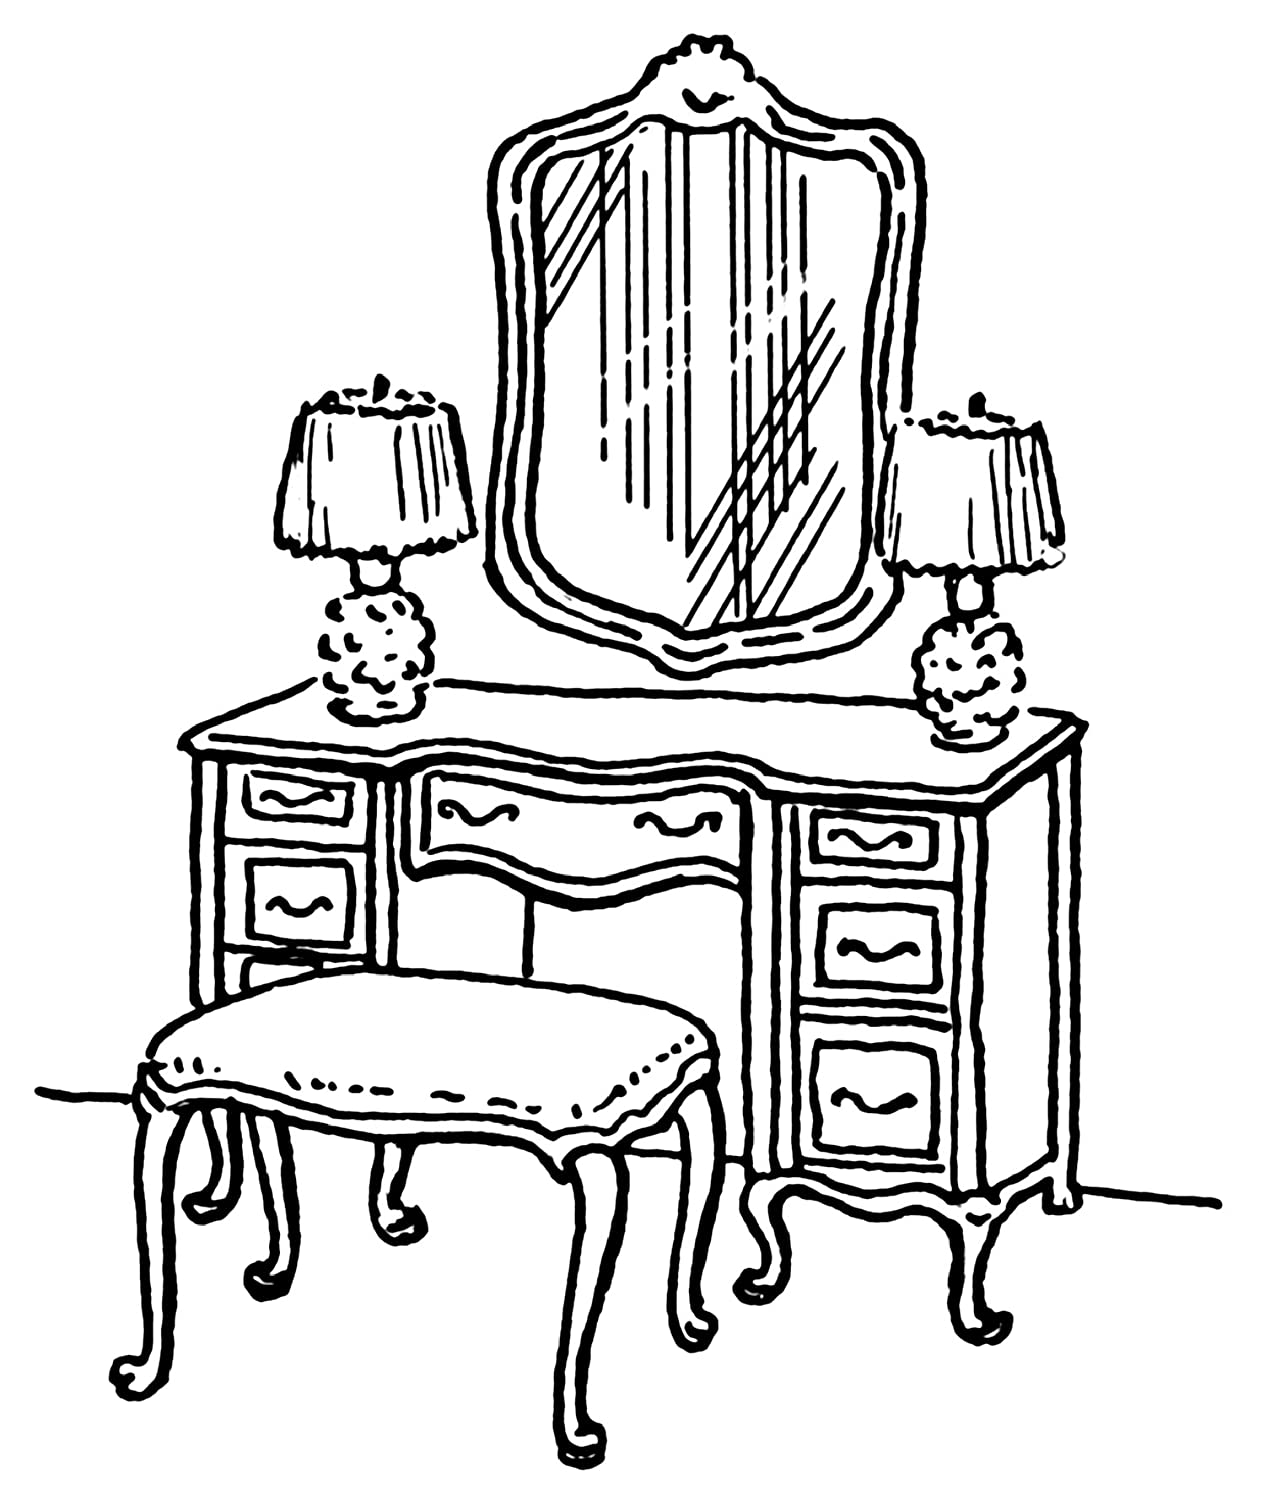 dresser clipart black and white. clear window cling 14cm x 10cm line drawing dressing table: amazon.co.uk: kitchen \u0026 home dresser clipart black and white